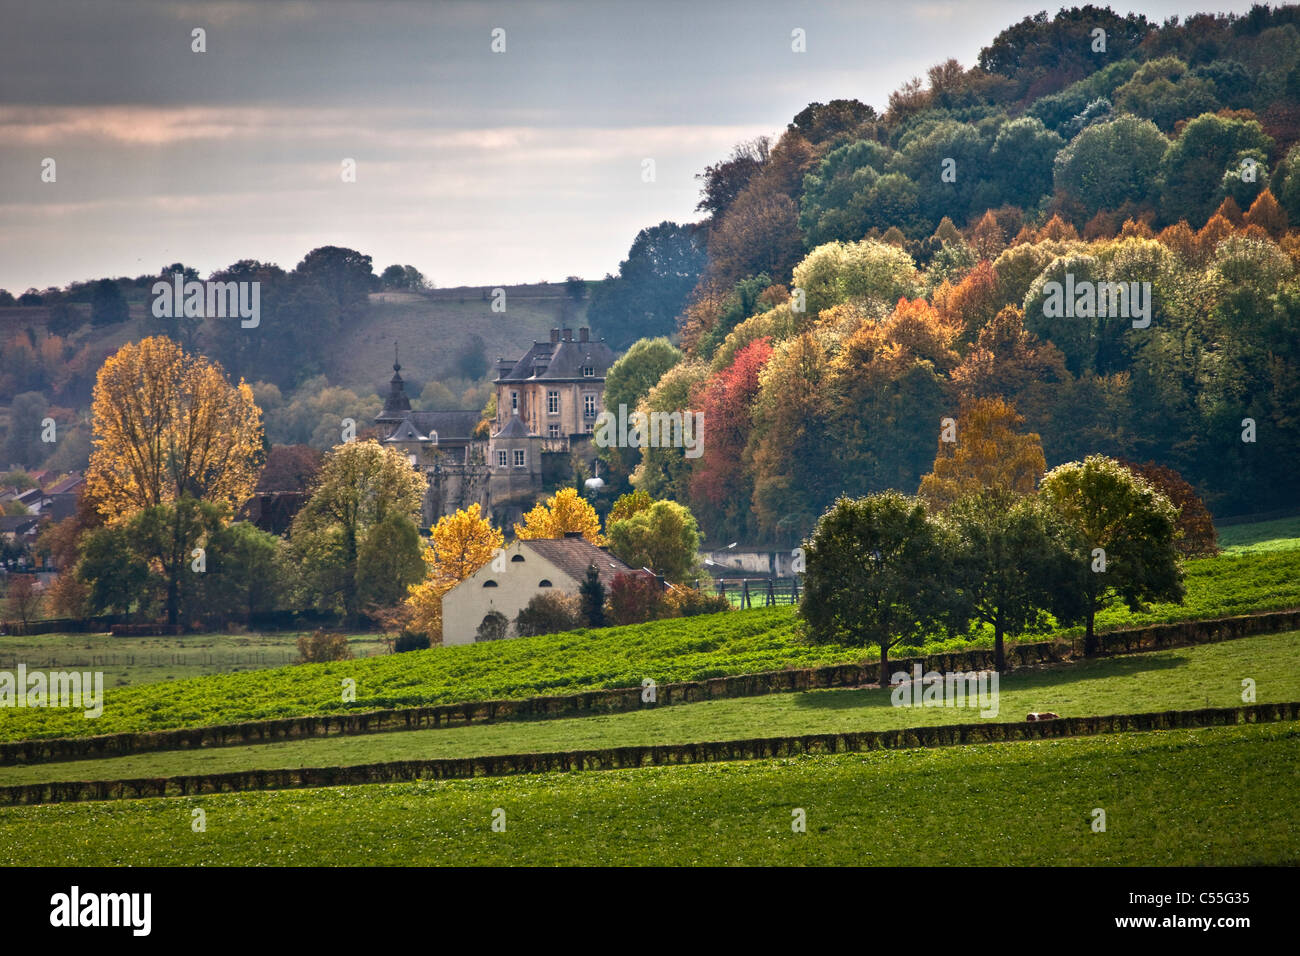 The Netherlands, Maastricht, Castle called Neercanne - Stock Image